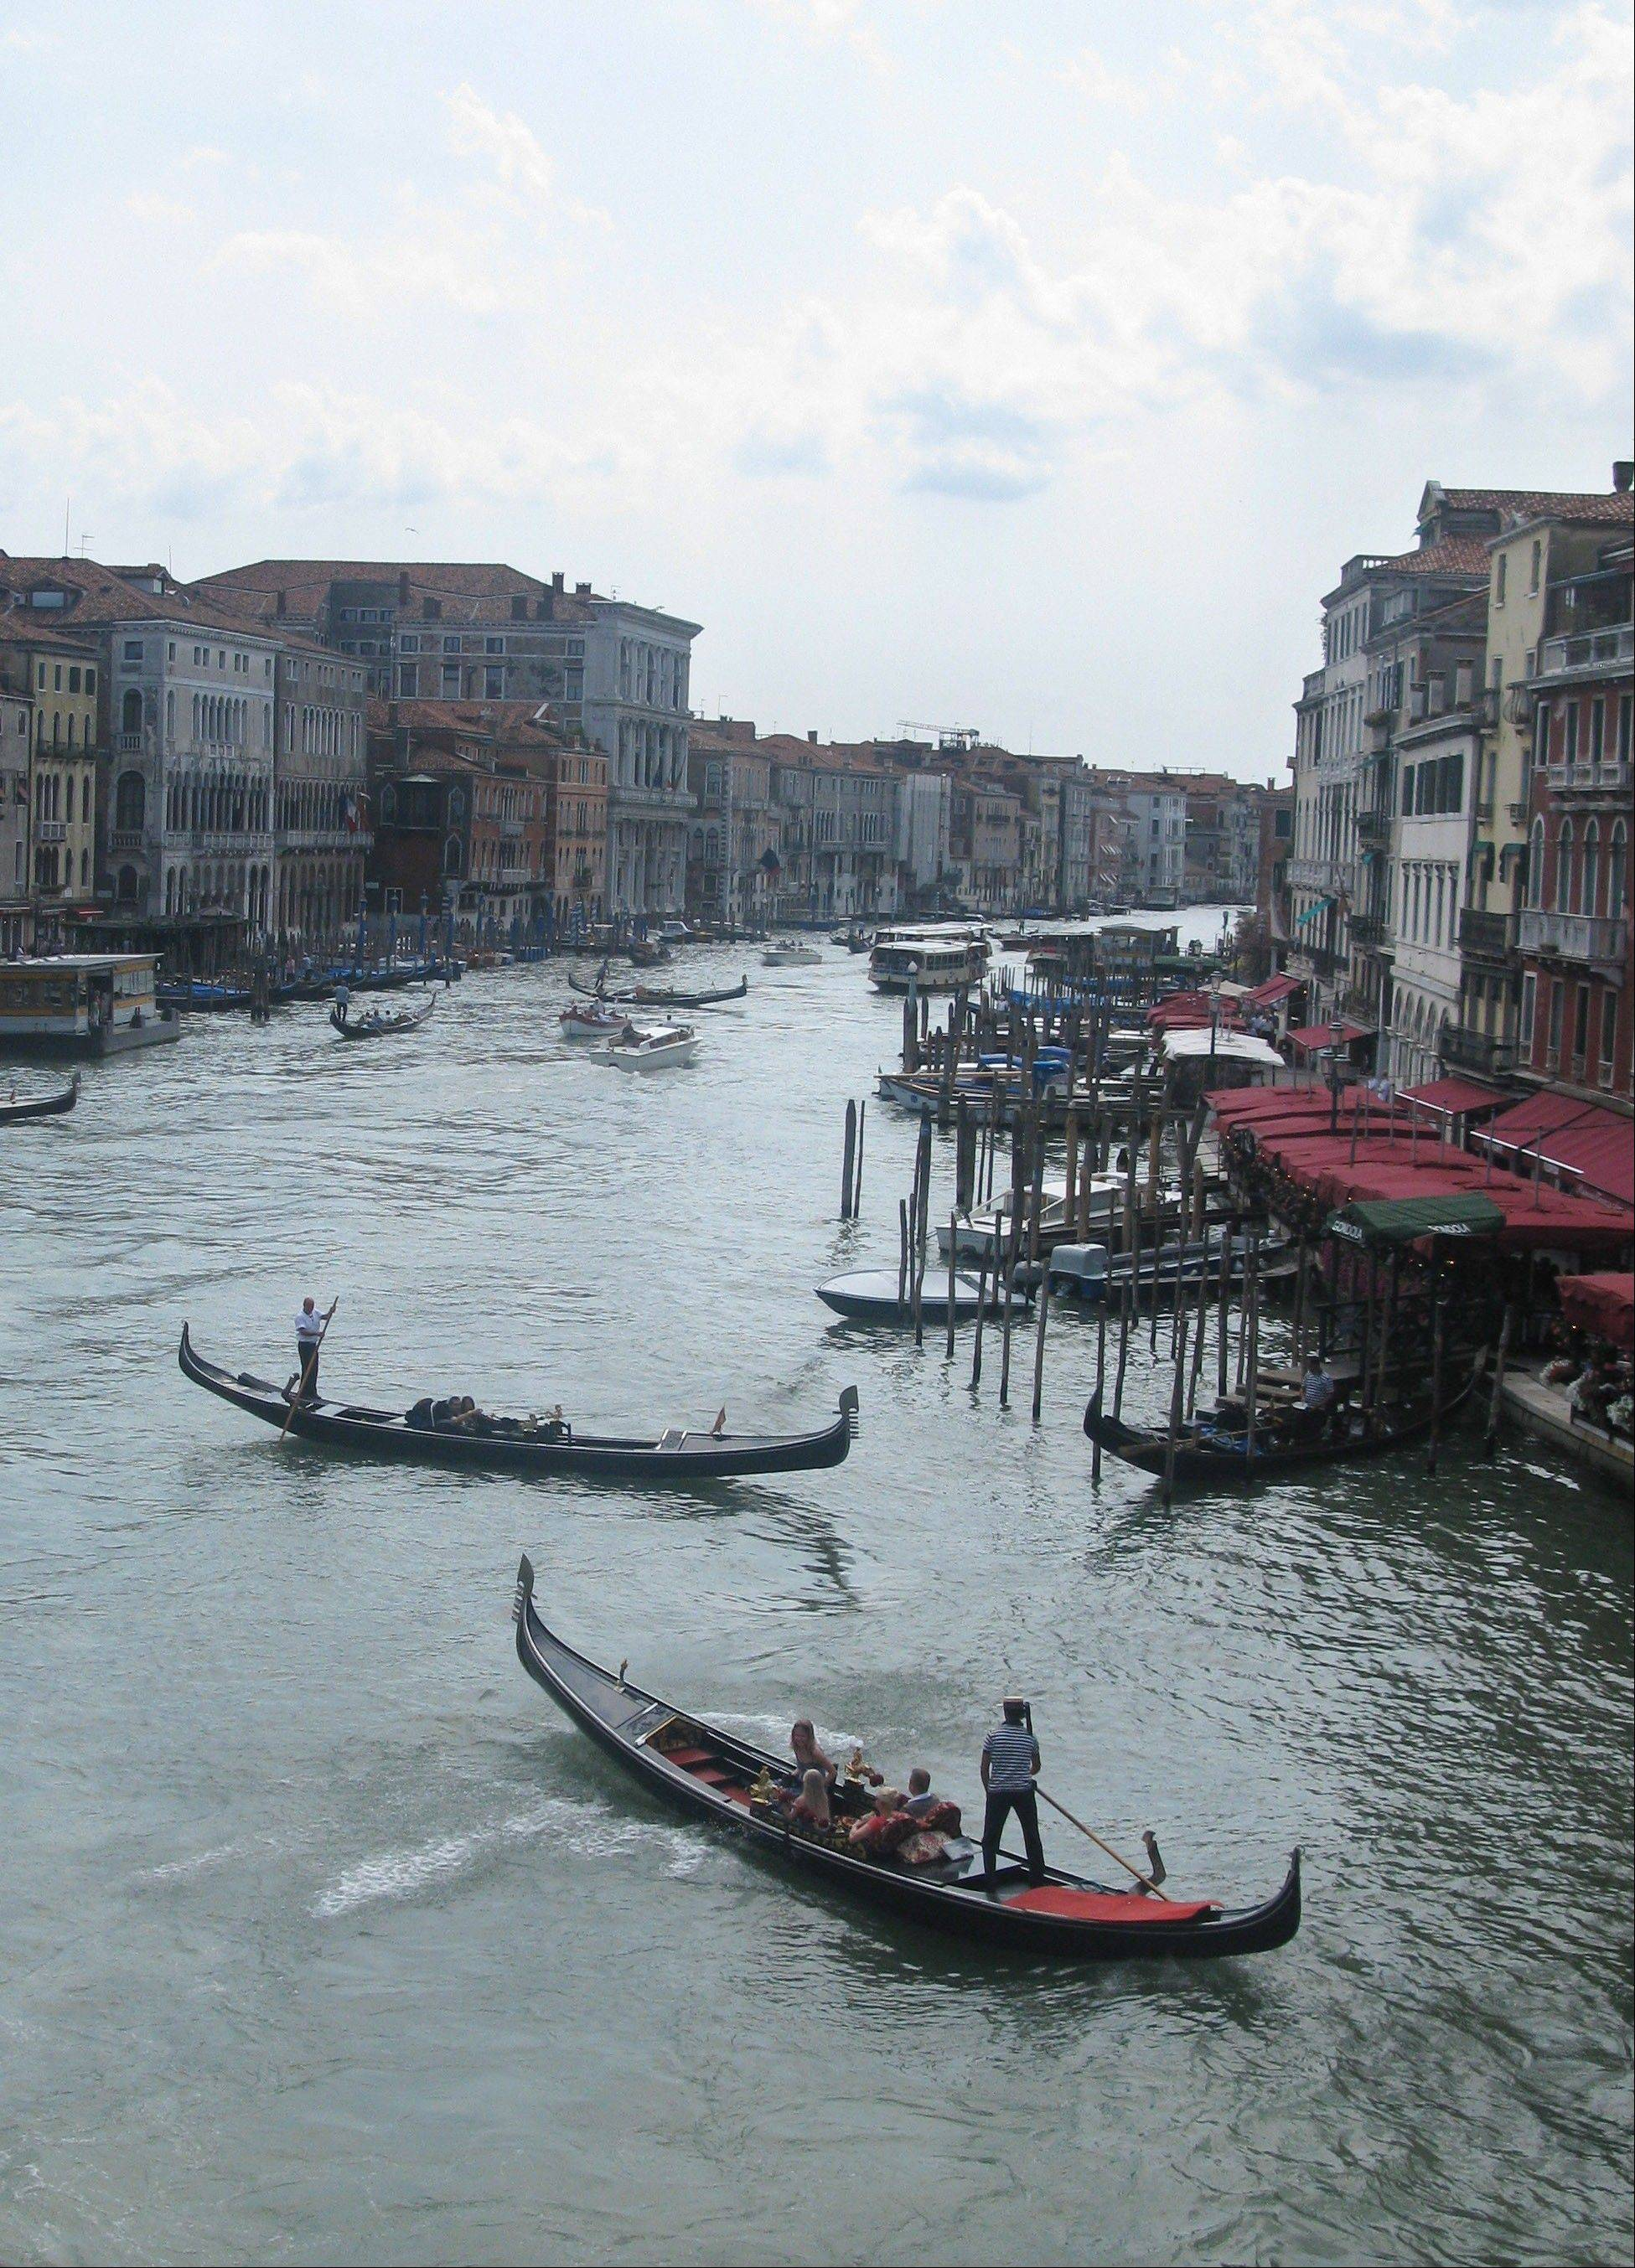 Gondolas jockey for position on the Grande Canale in Venice.